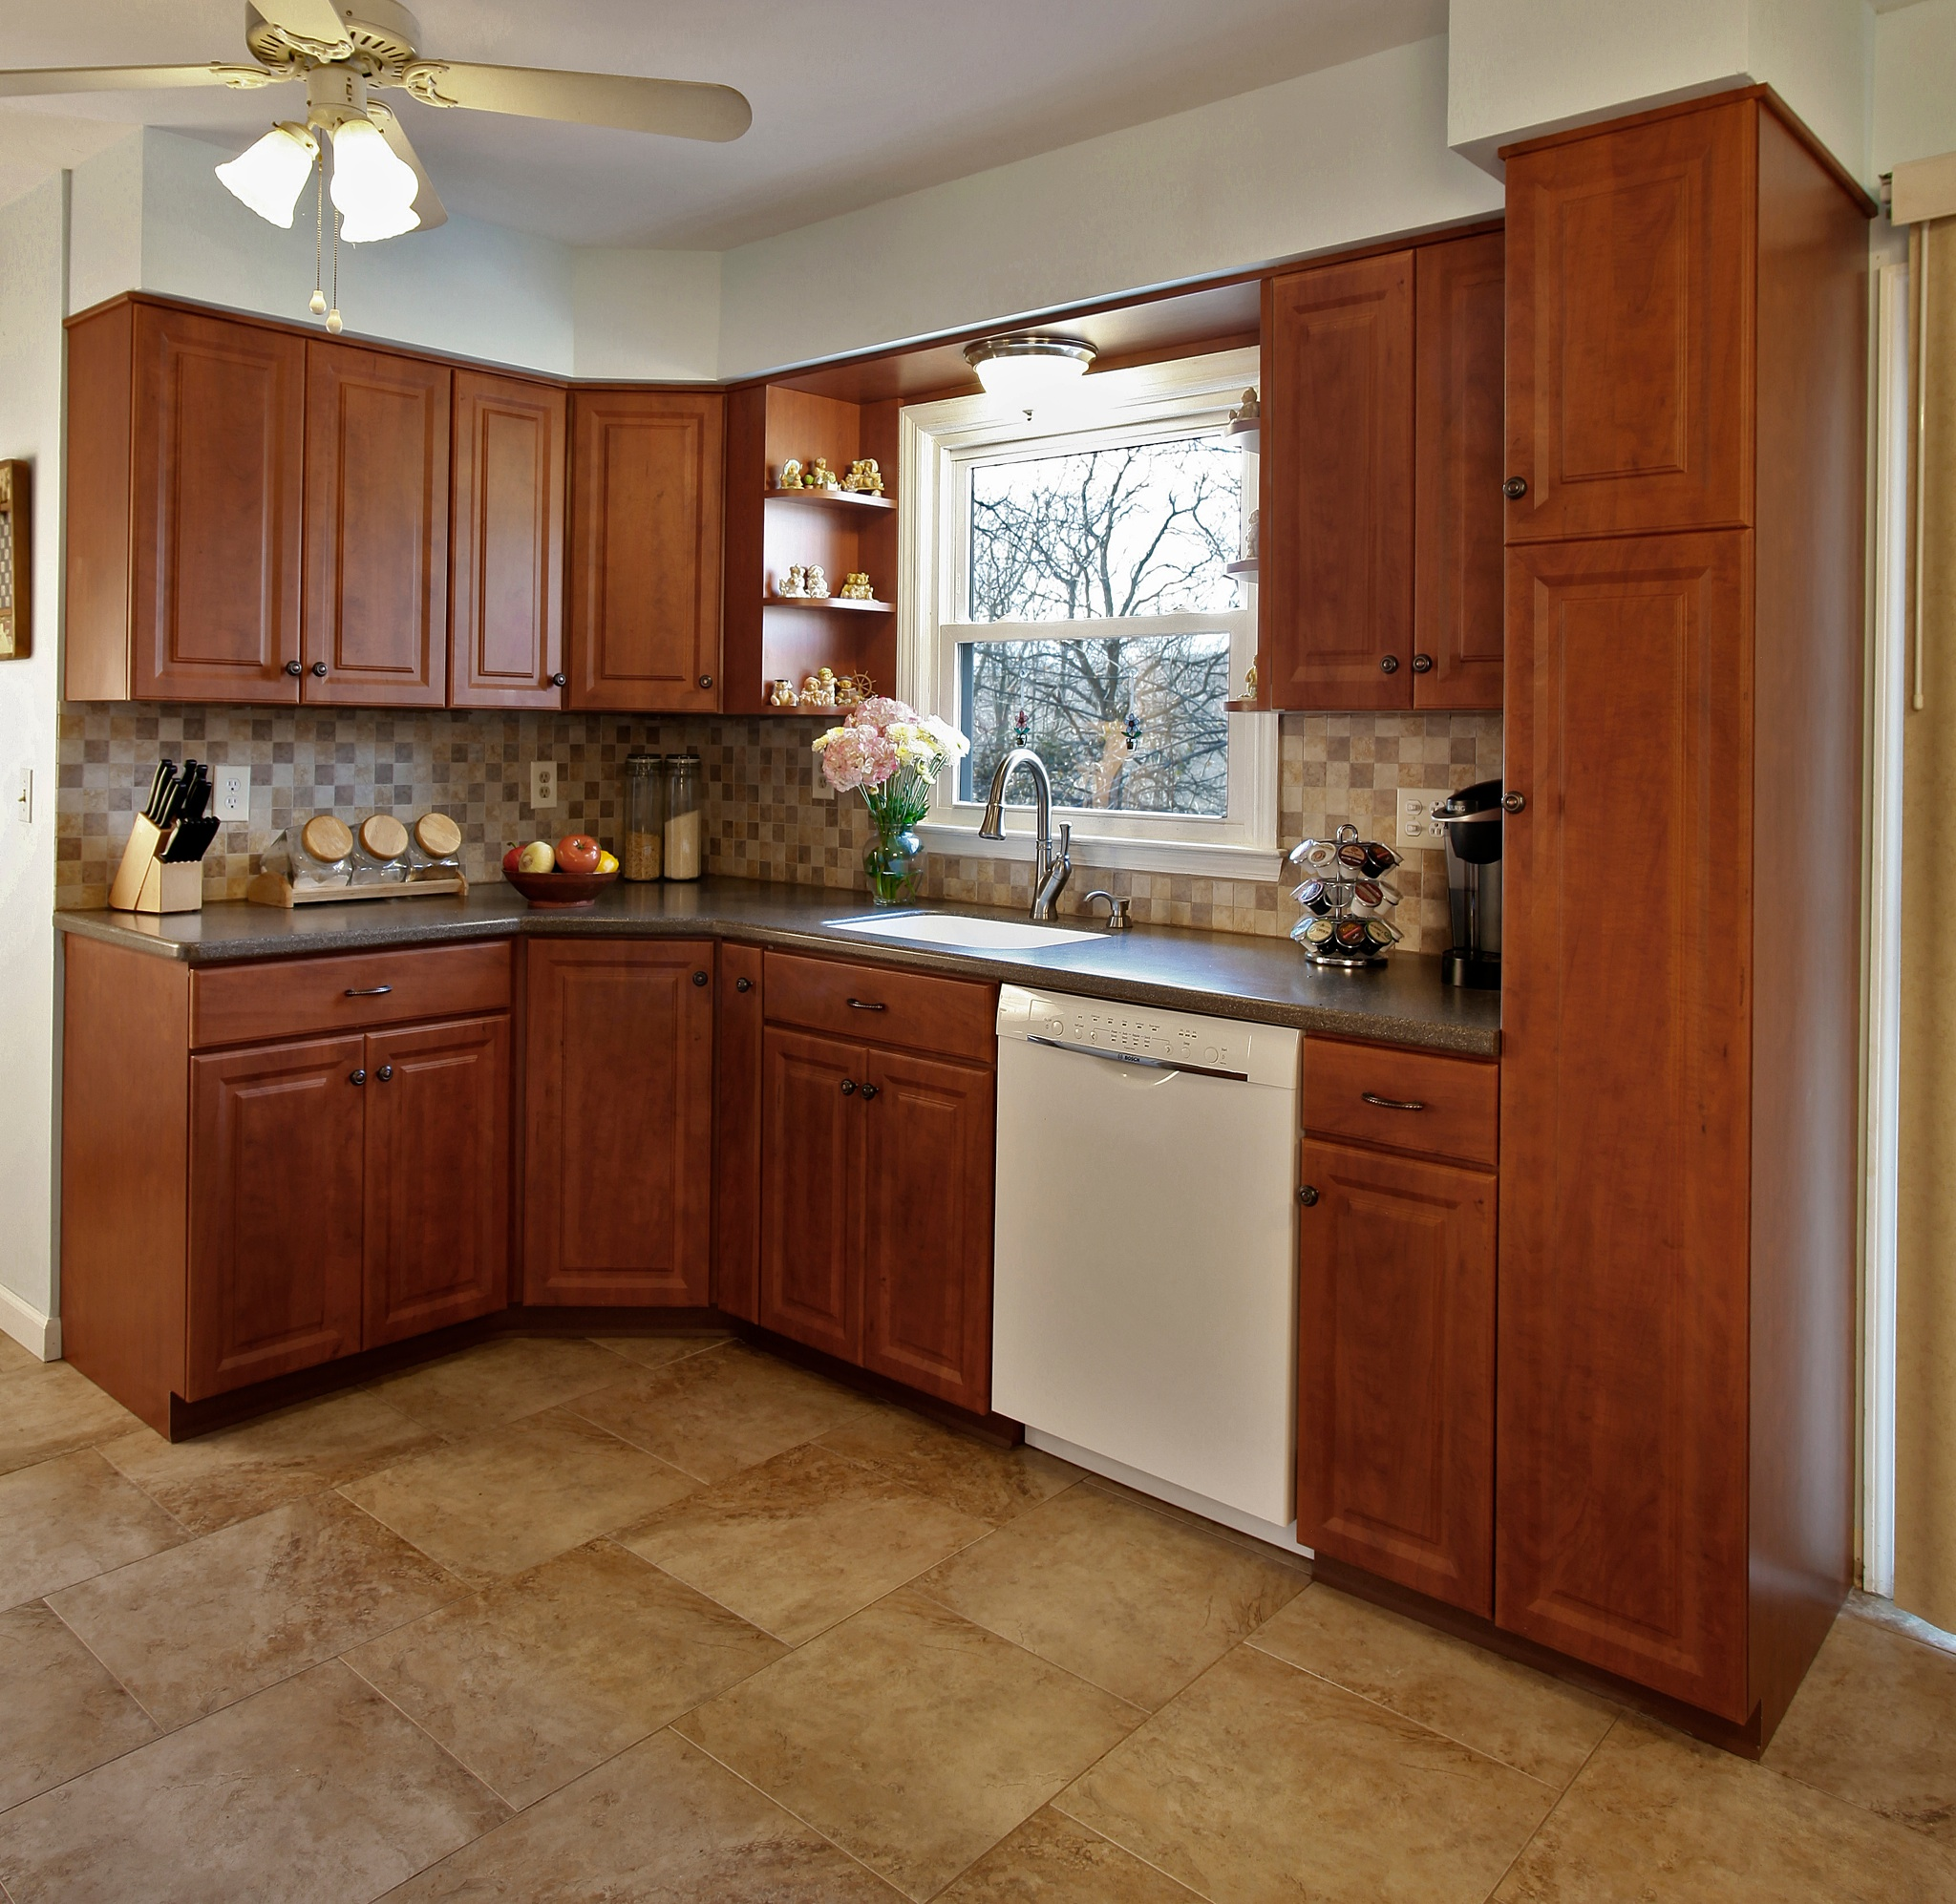 Kitchens sharjah uae kitchen cabinet door styles cabinet door styles - Kitchen Project Consider These Different Types Of Cabinet Doors Home Improvements